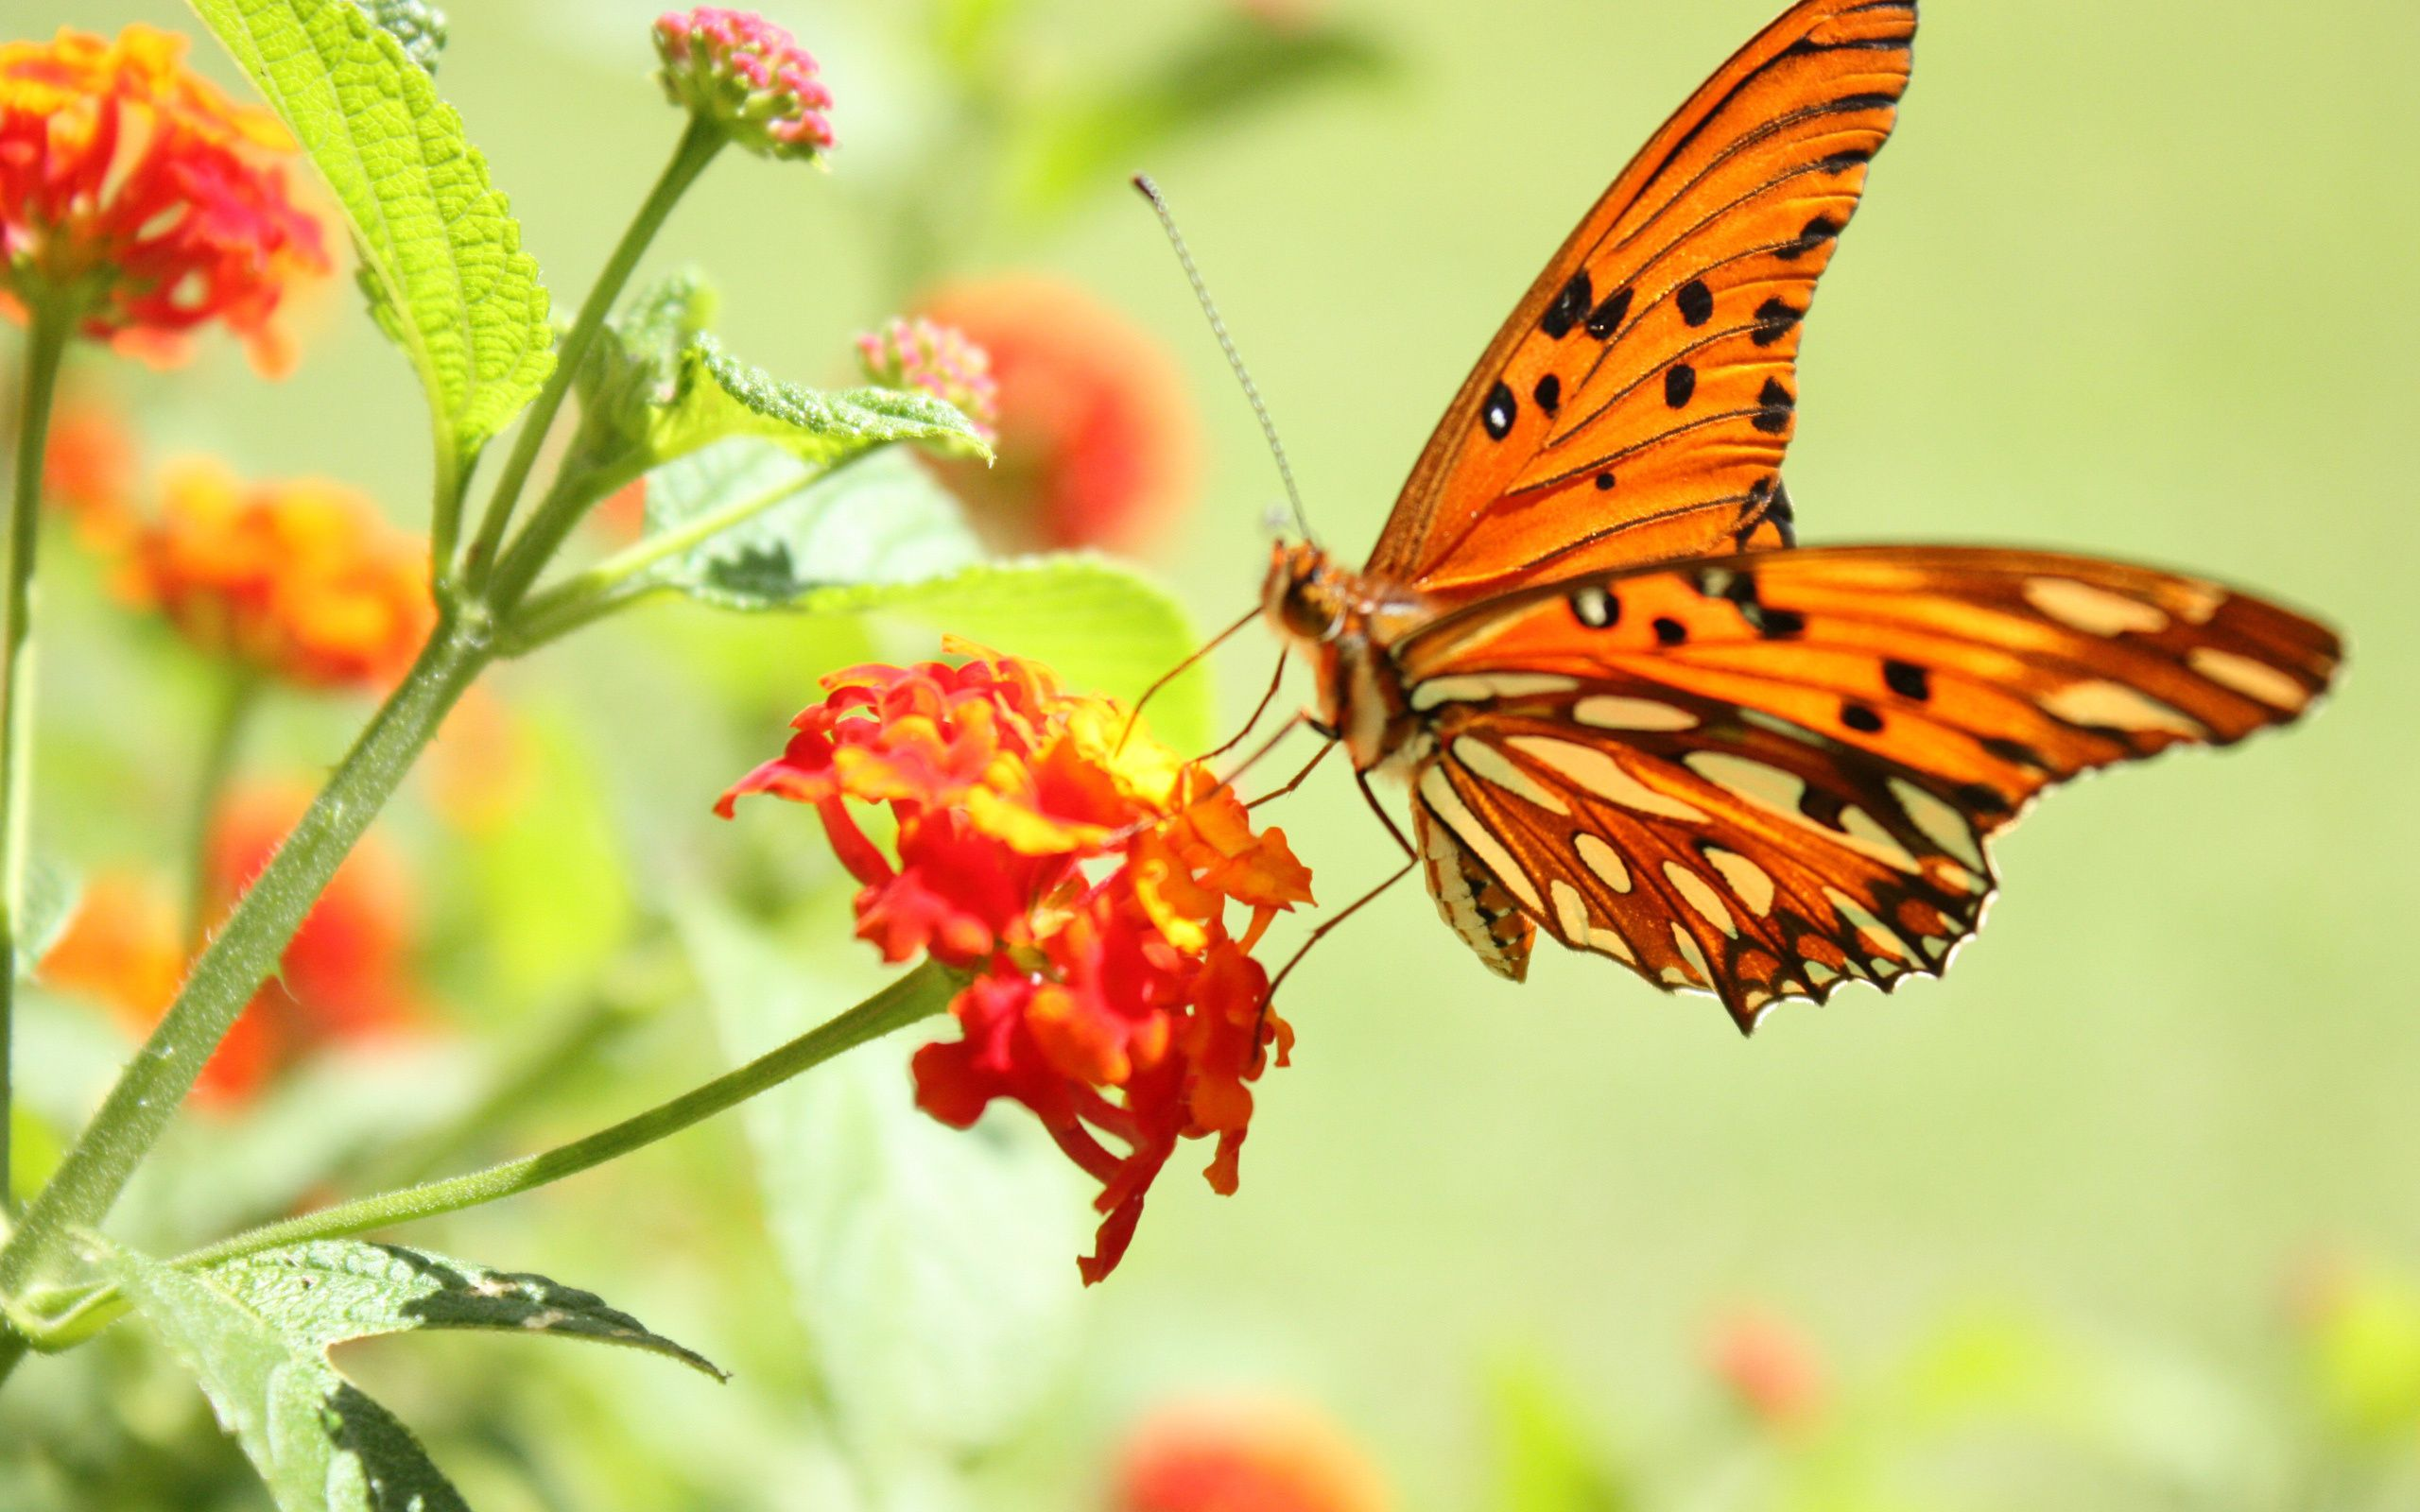 Exceptionnel Wallpaper Flower Butterfly Macro Desktop » Animals